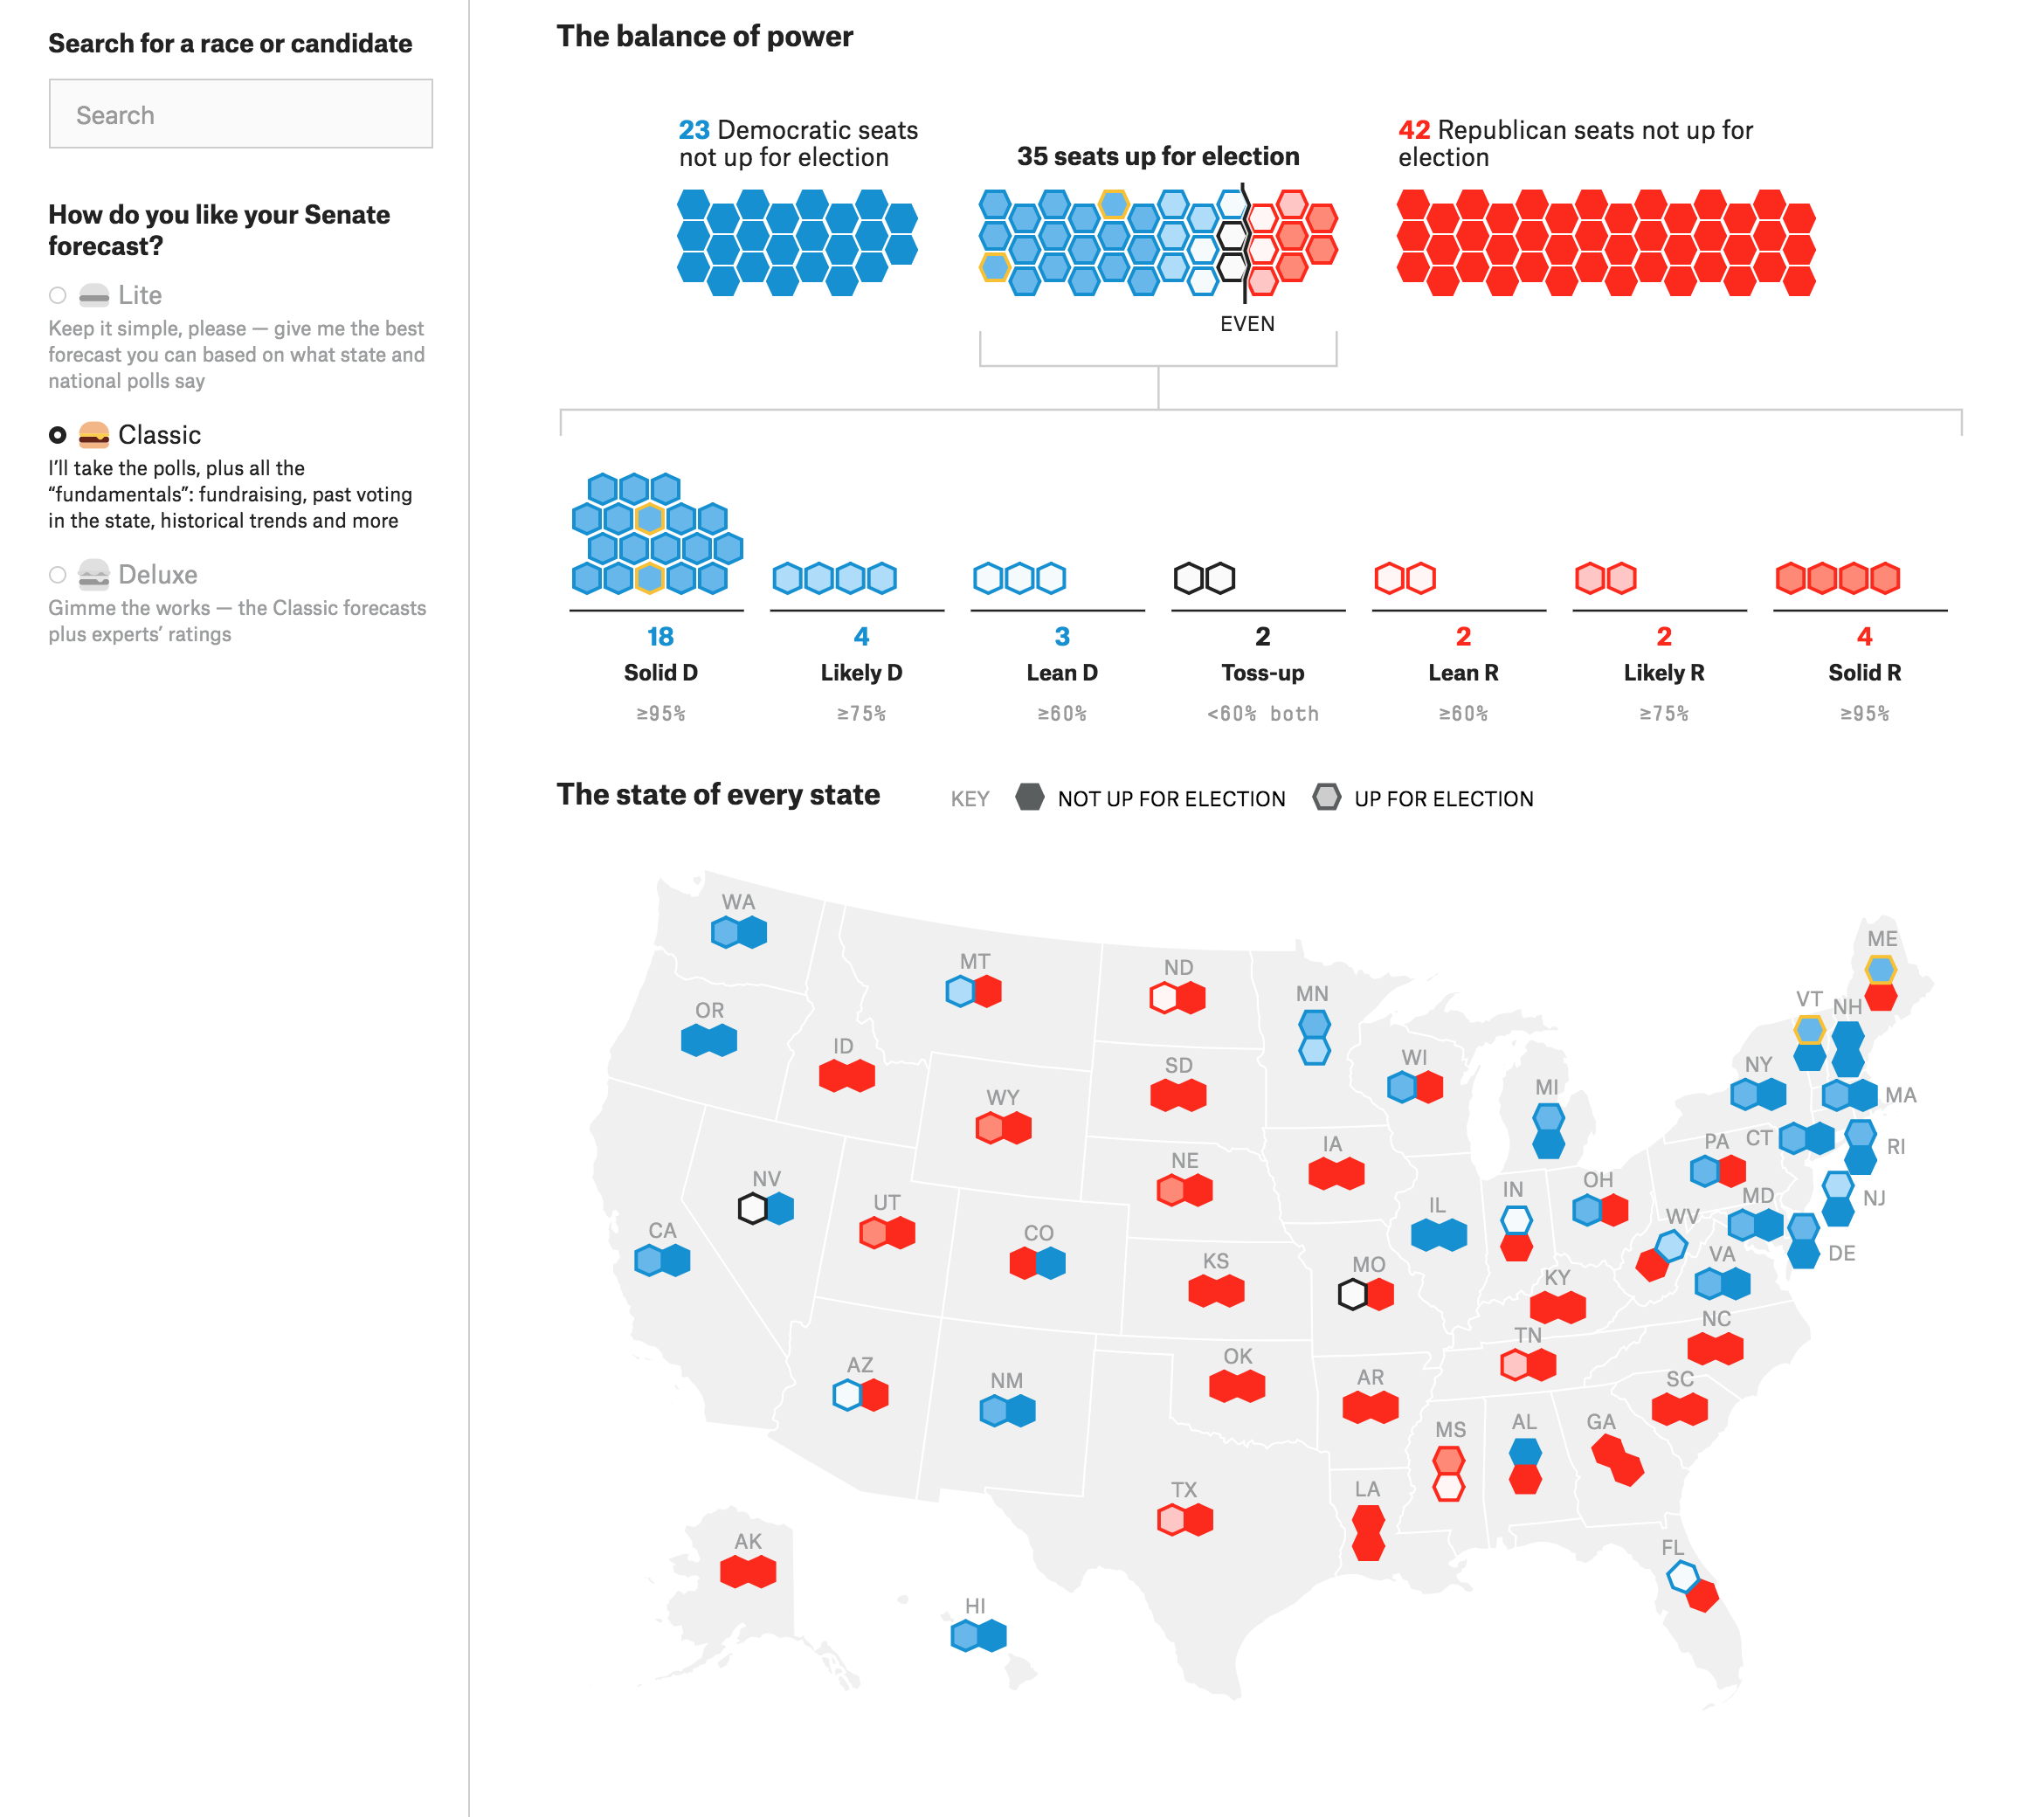 That's a lot of red states…